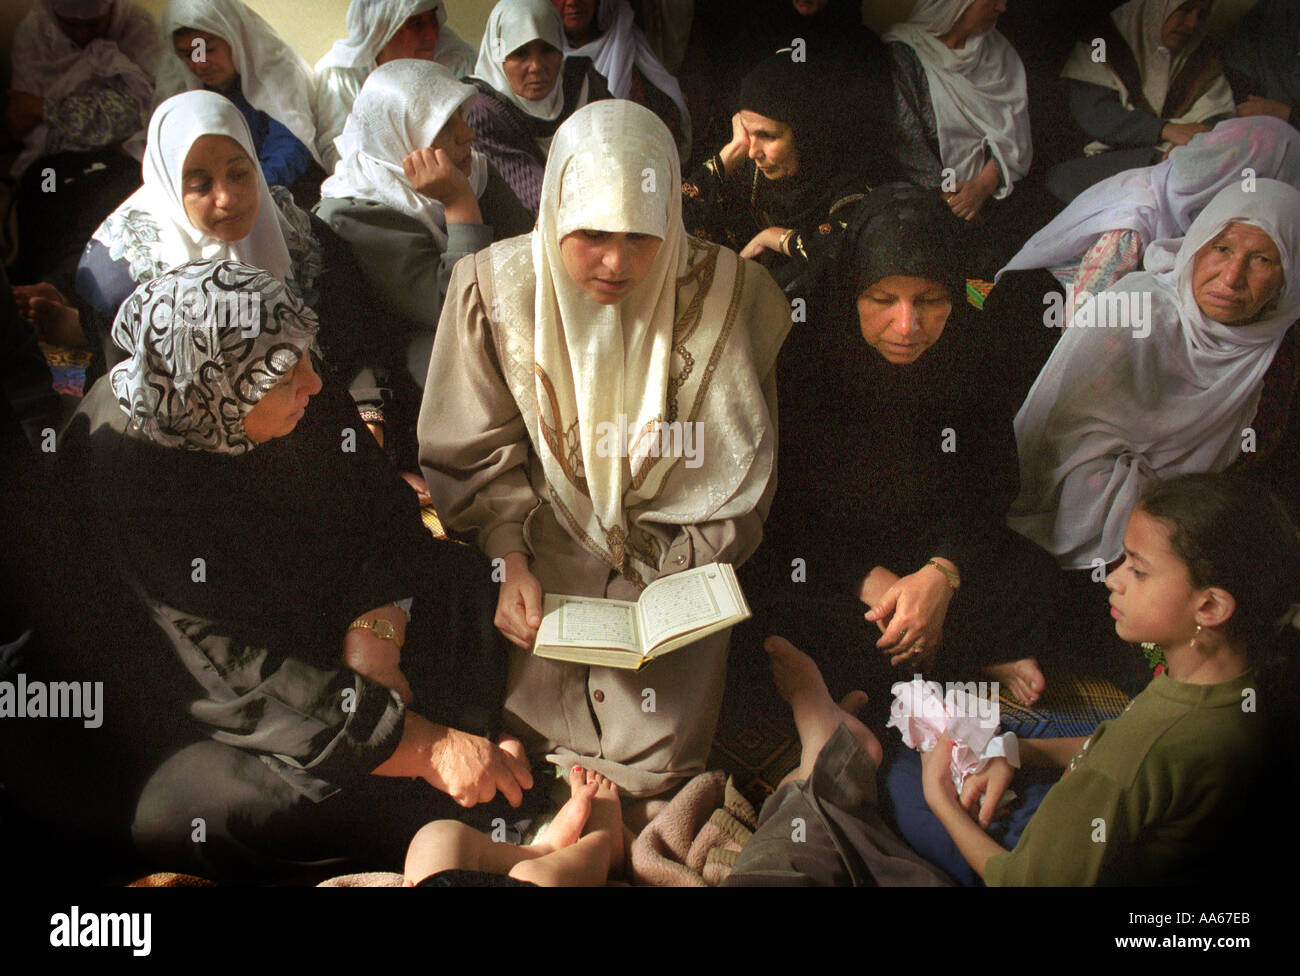 Muslim women pray at the funeral of Yusuf Khalifa 18 in Gaza Monday October 9 2000 Photo by Ami Vitale - Stock Image